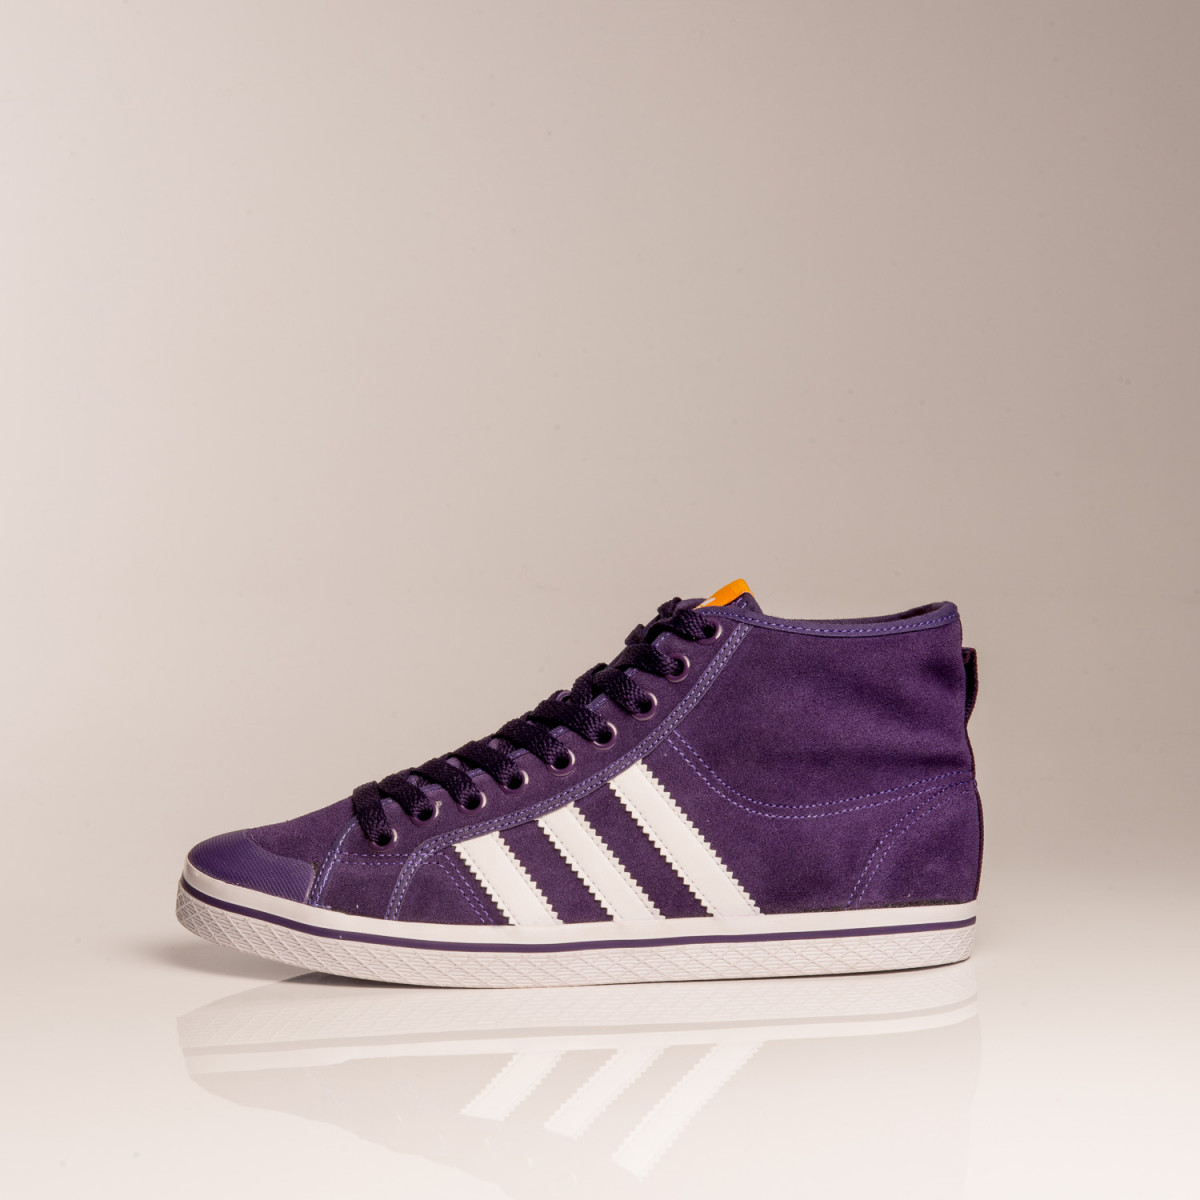 ZAPATILLAS ADIDAS ORIGINALS HONEY STRIPES MID W